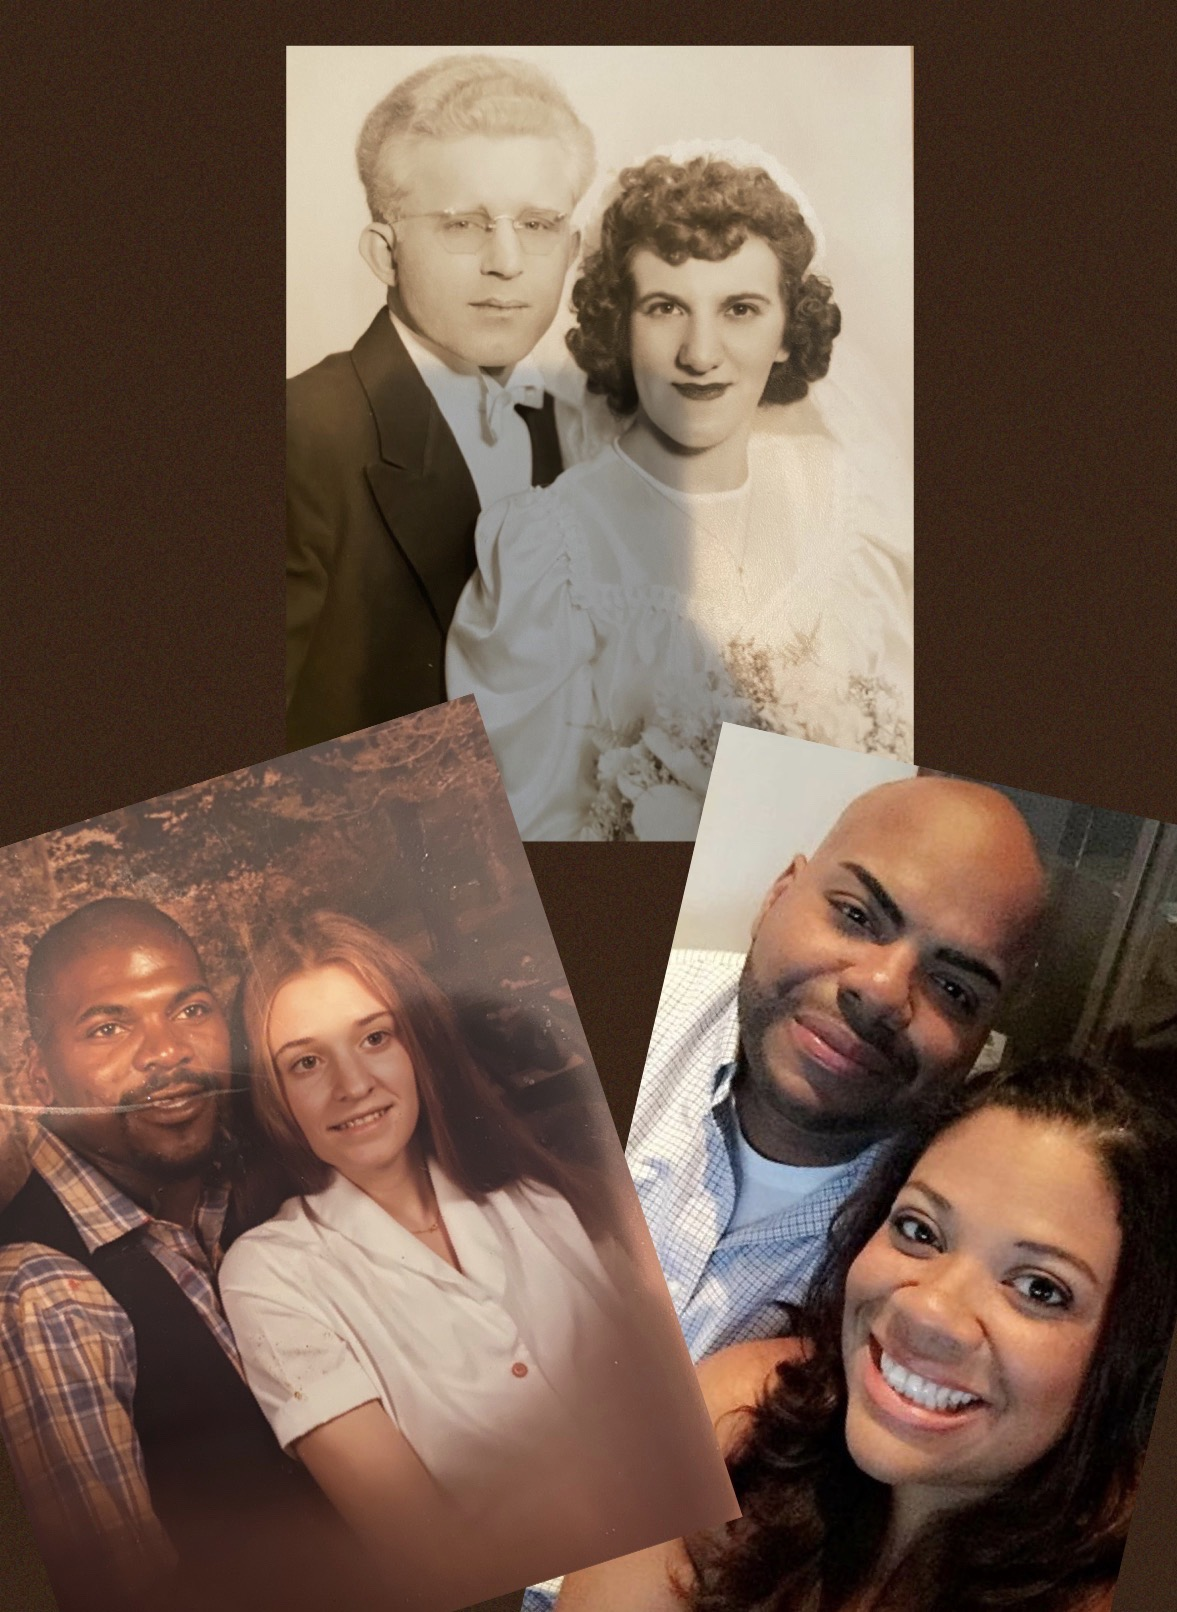 Three photos of couples, color photo